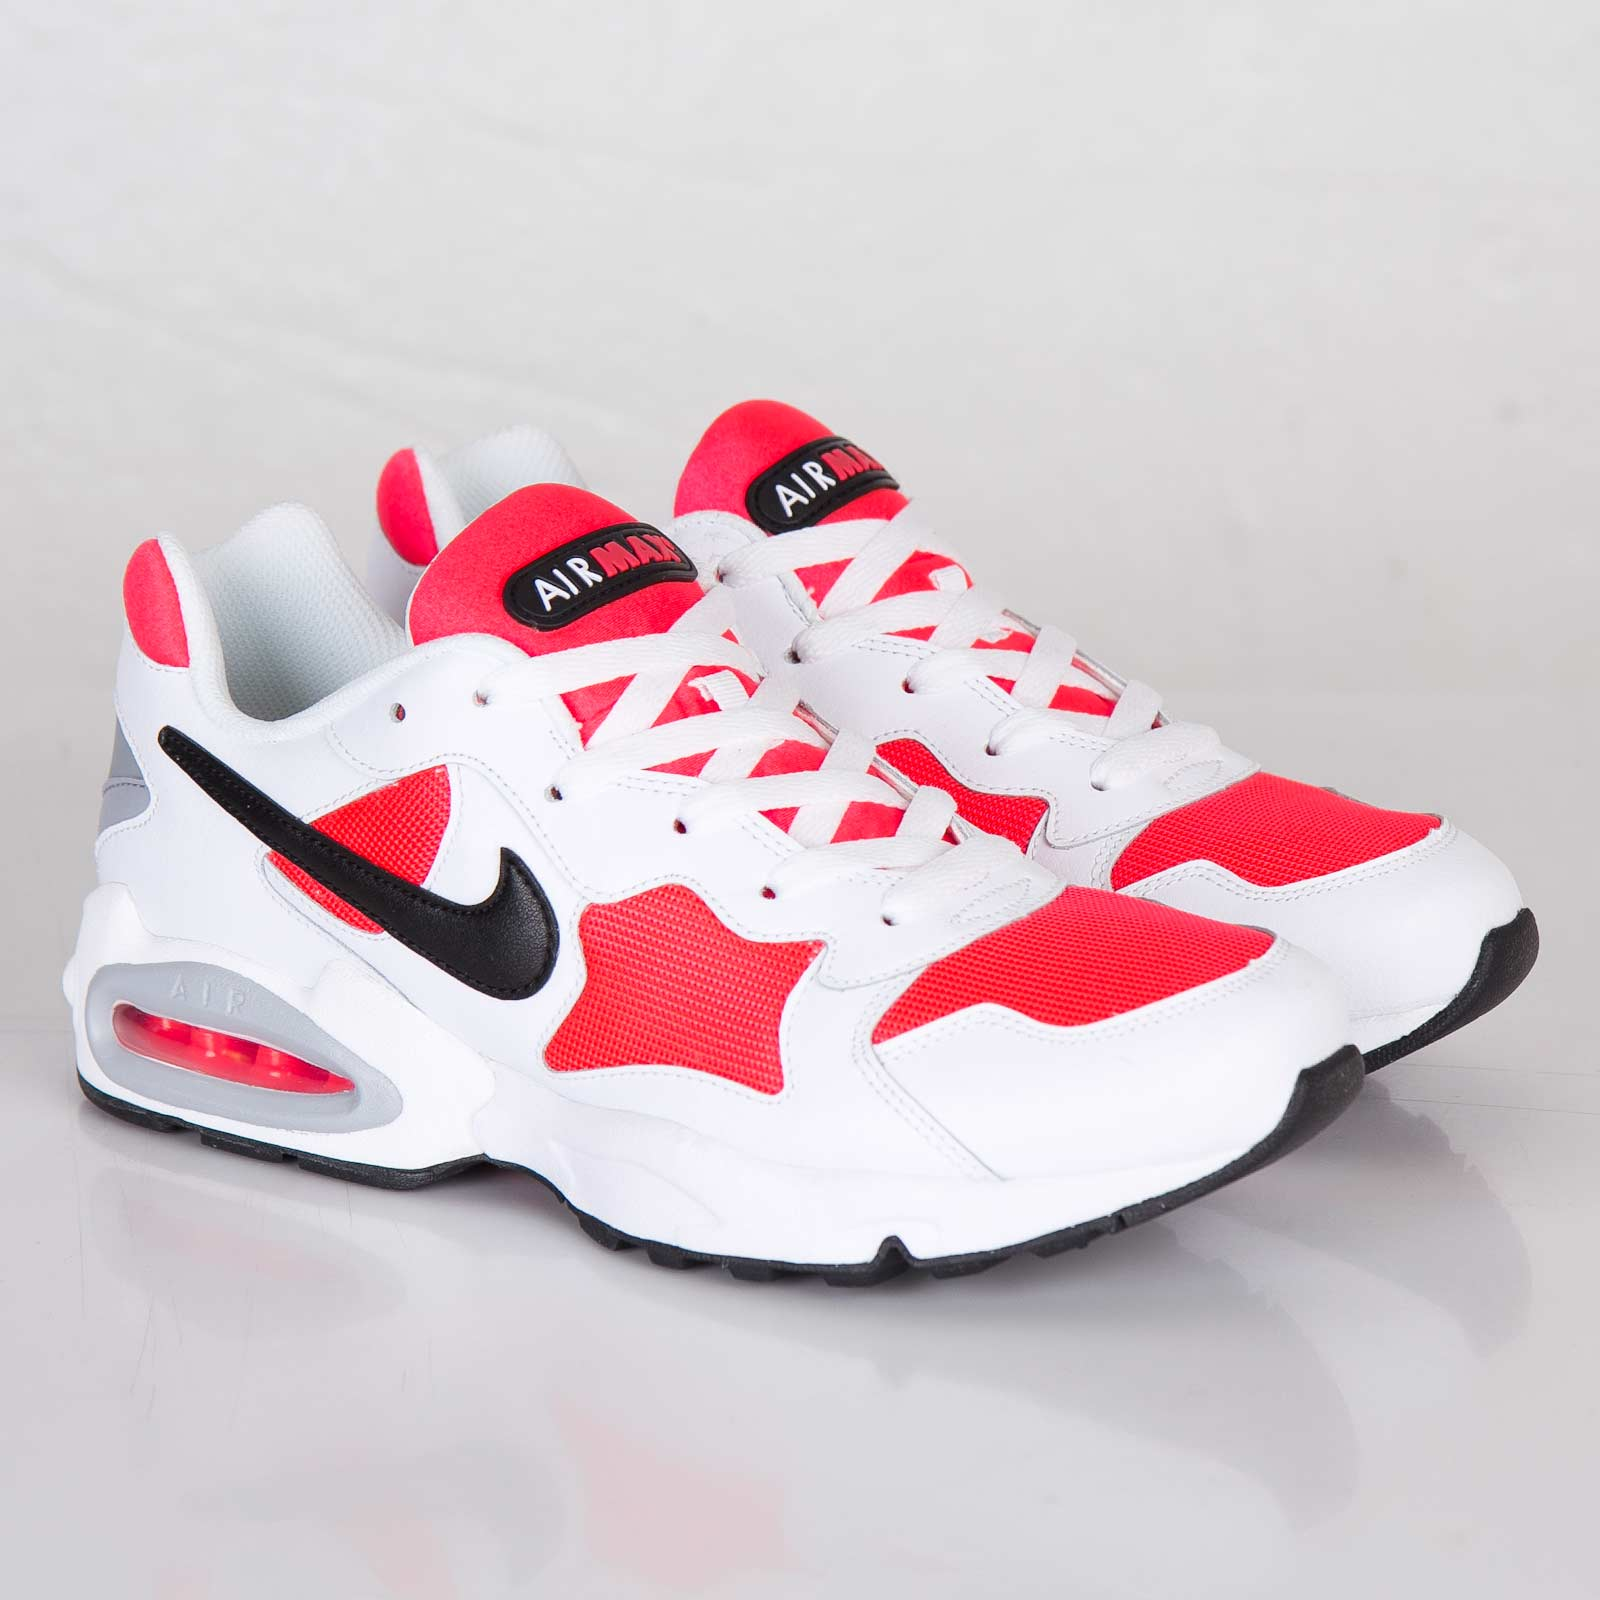 Nike Air Max Triax ´94 615767 600 Sneakersnstuff